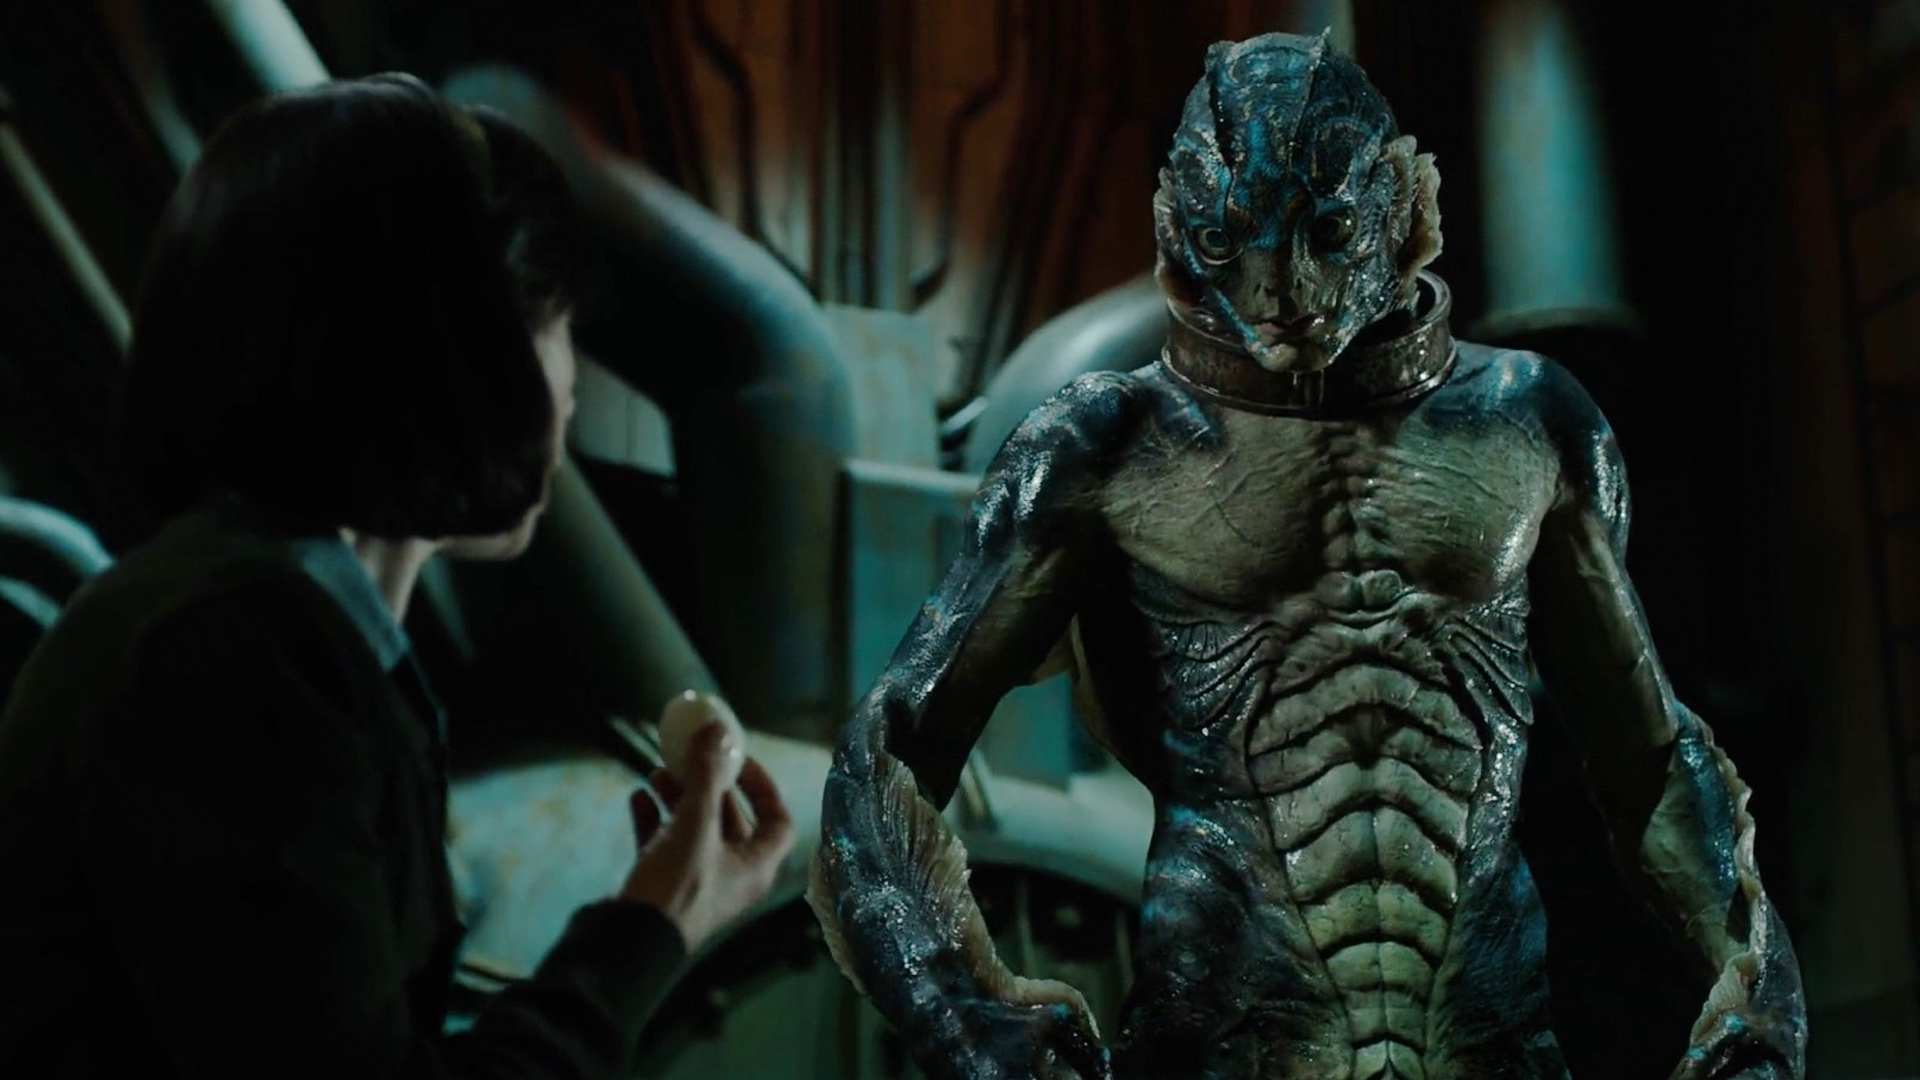 guillermo-del-toro-wins-best-director-and-the-shape-of-water-wins-best-picture-at-the-oscars-social.jpg